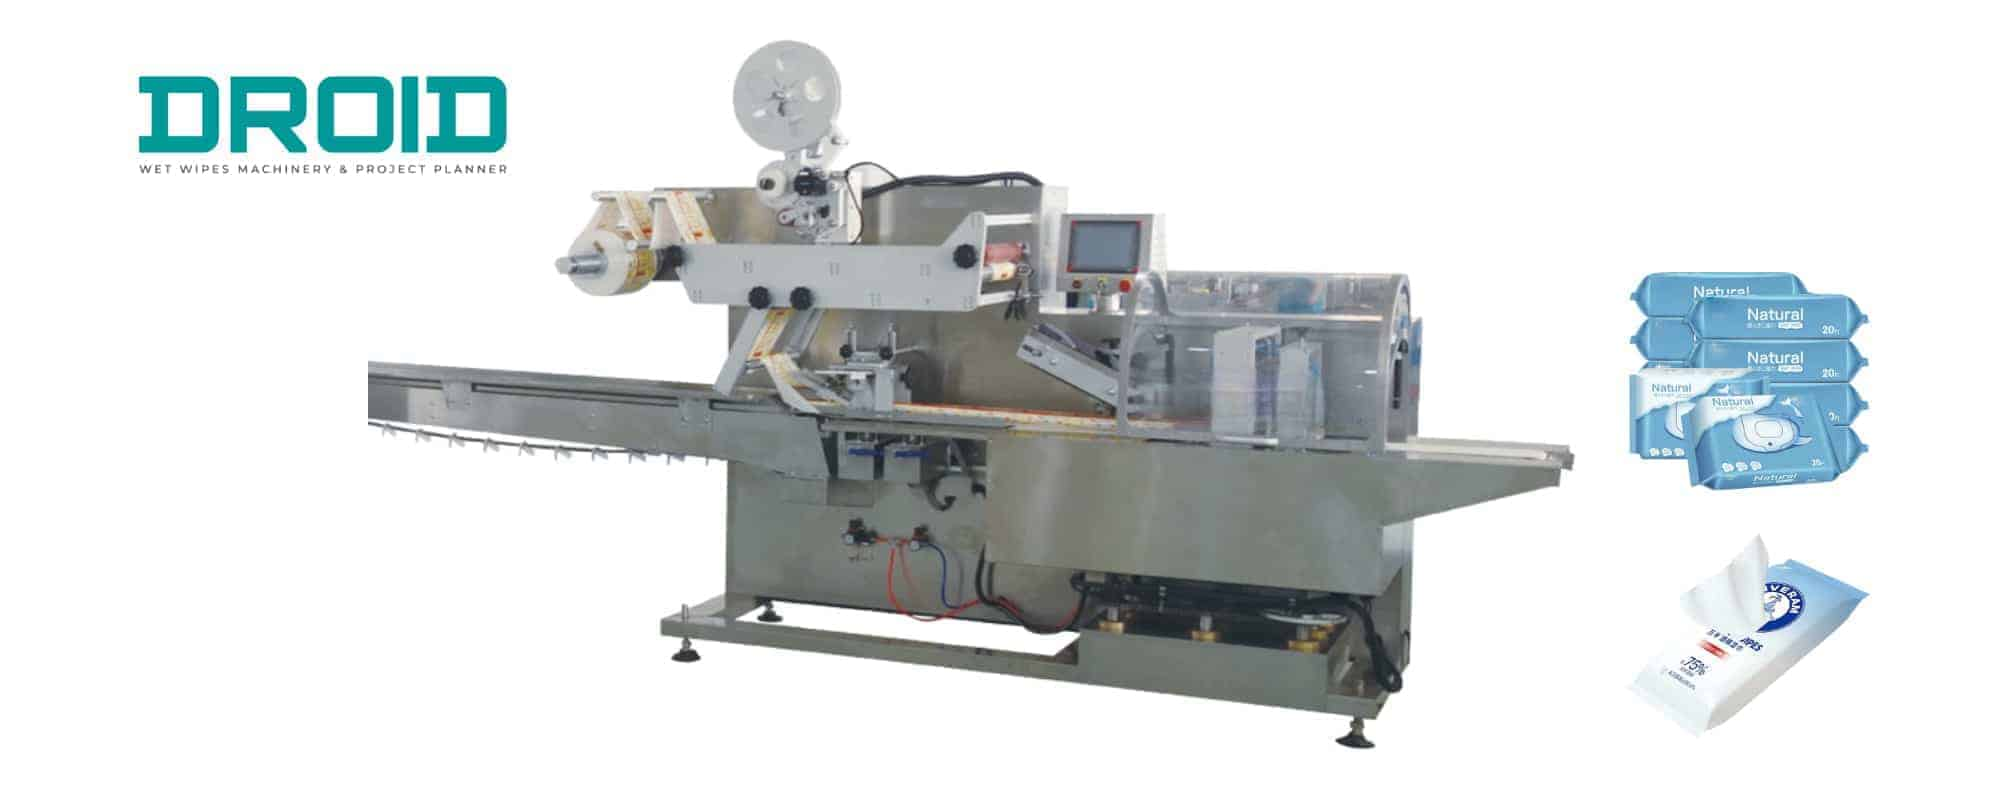 wet wipes packaging machine2 - Wet Wipes Packaging Machine